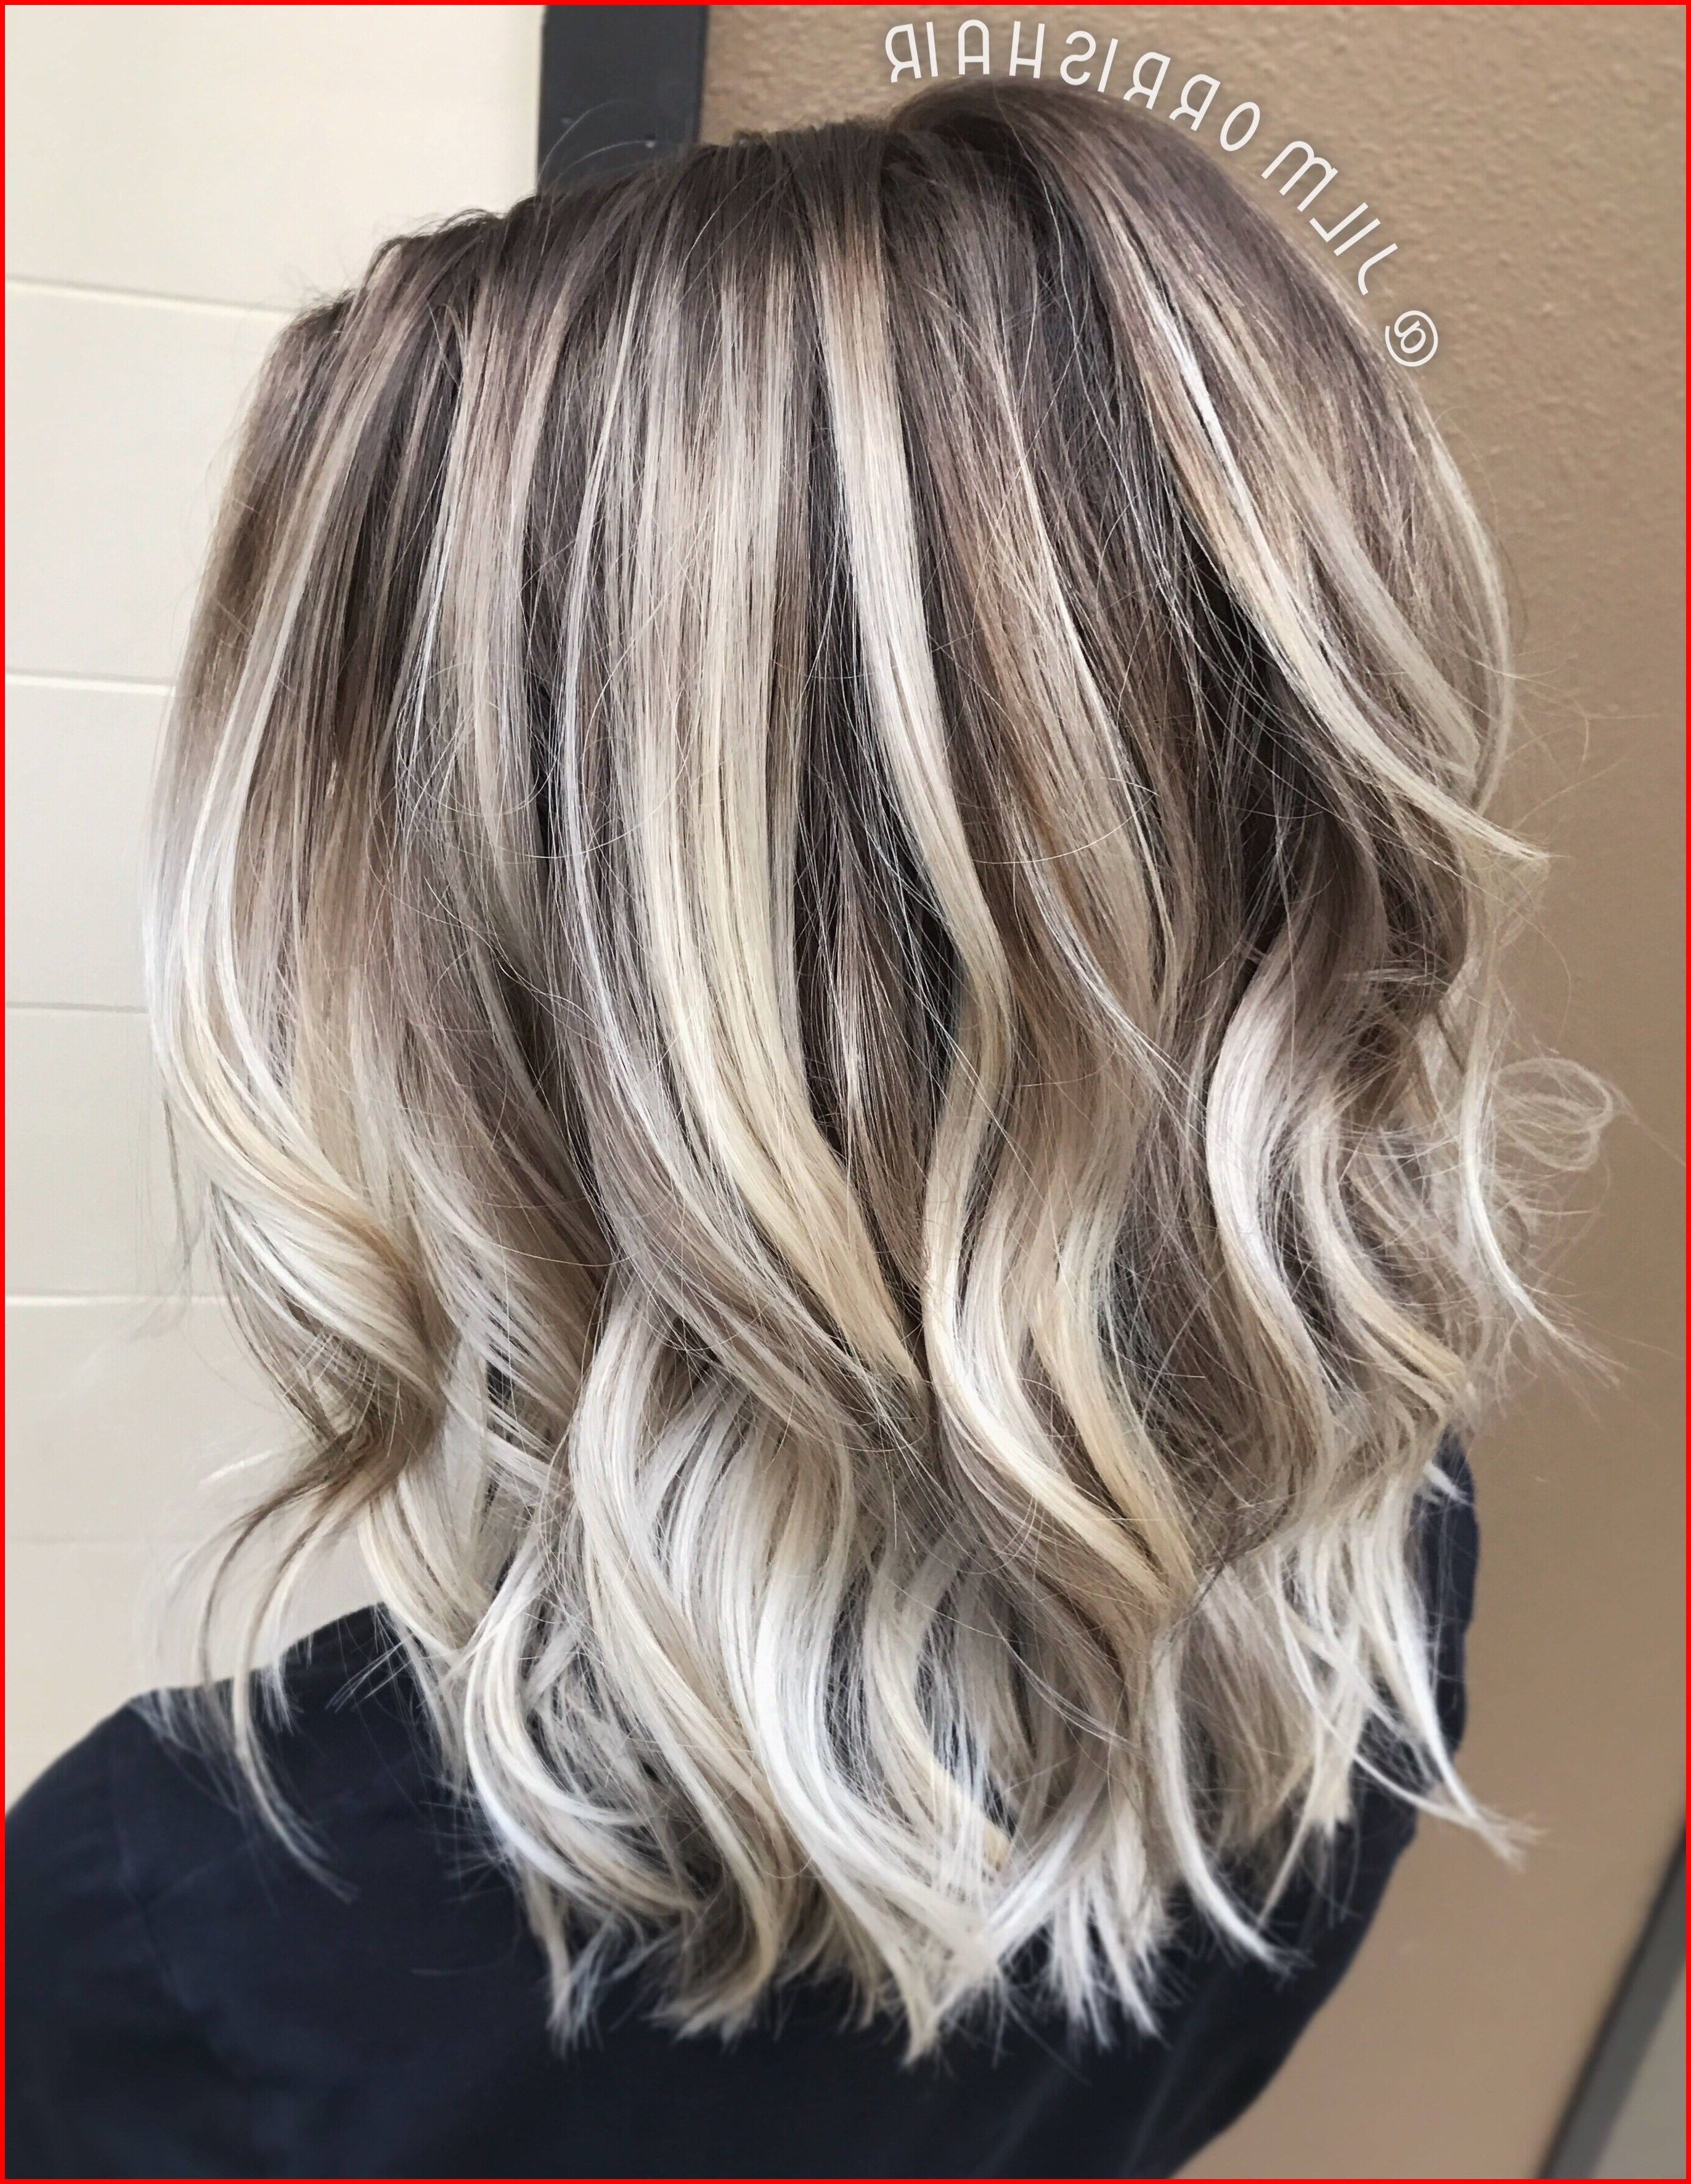 Most Recent Blonde Hairstyles With Platinum Babylights With Platinum Hair Color Fresh Hair Colors With Highlights And Lowlights (View 13 of 20)